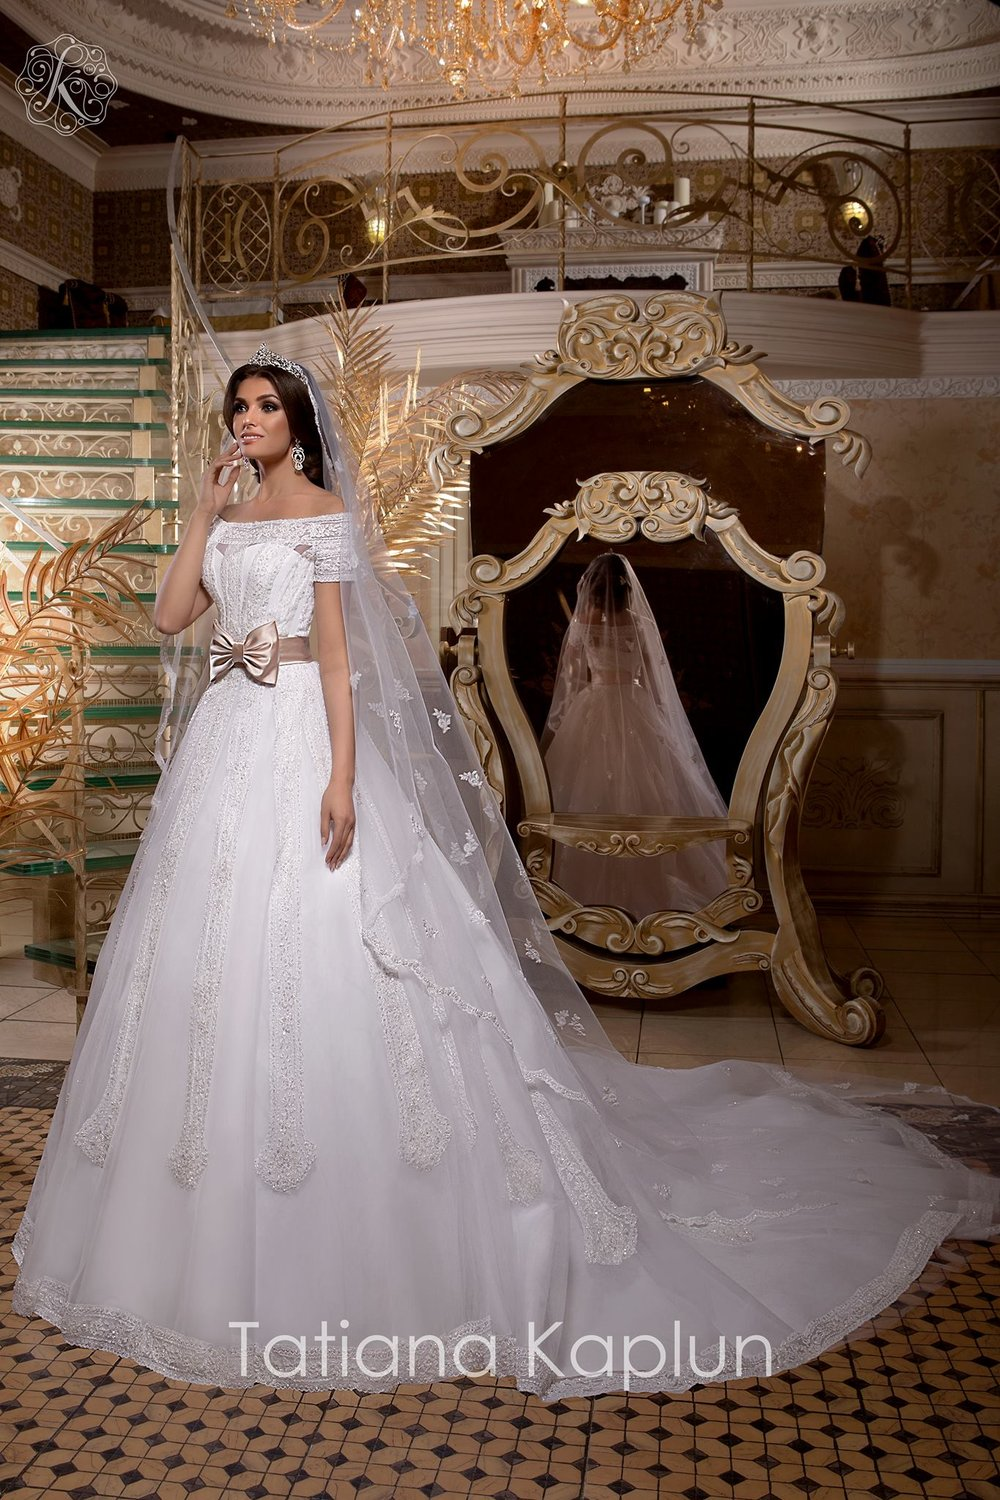 RENE wedding dress $950